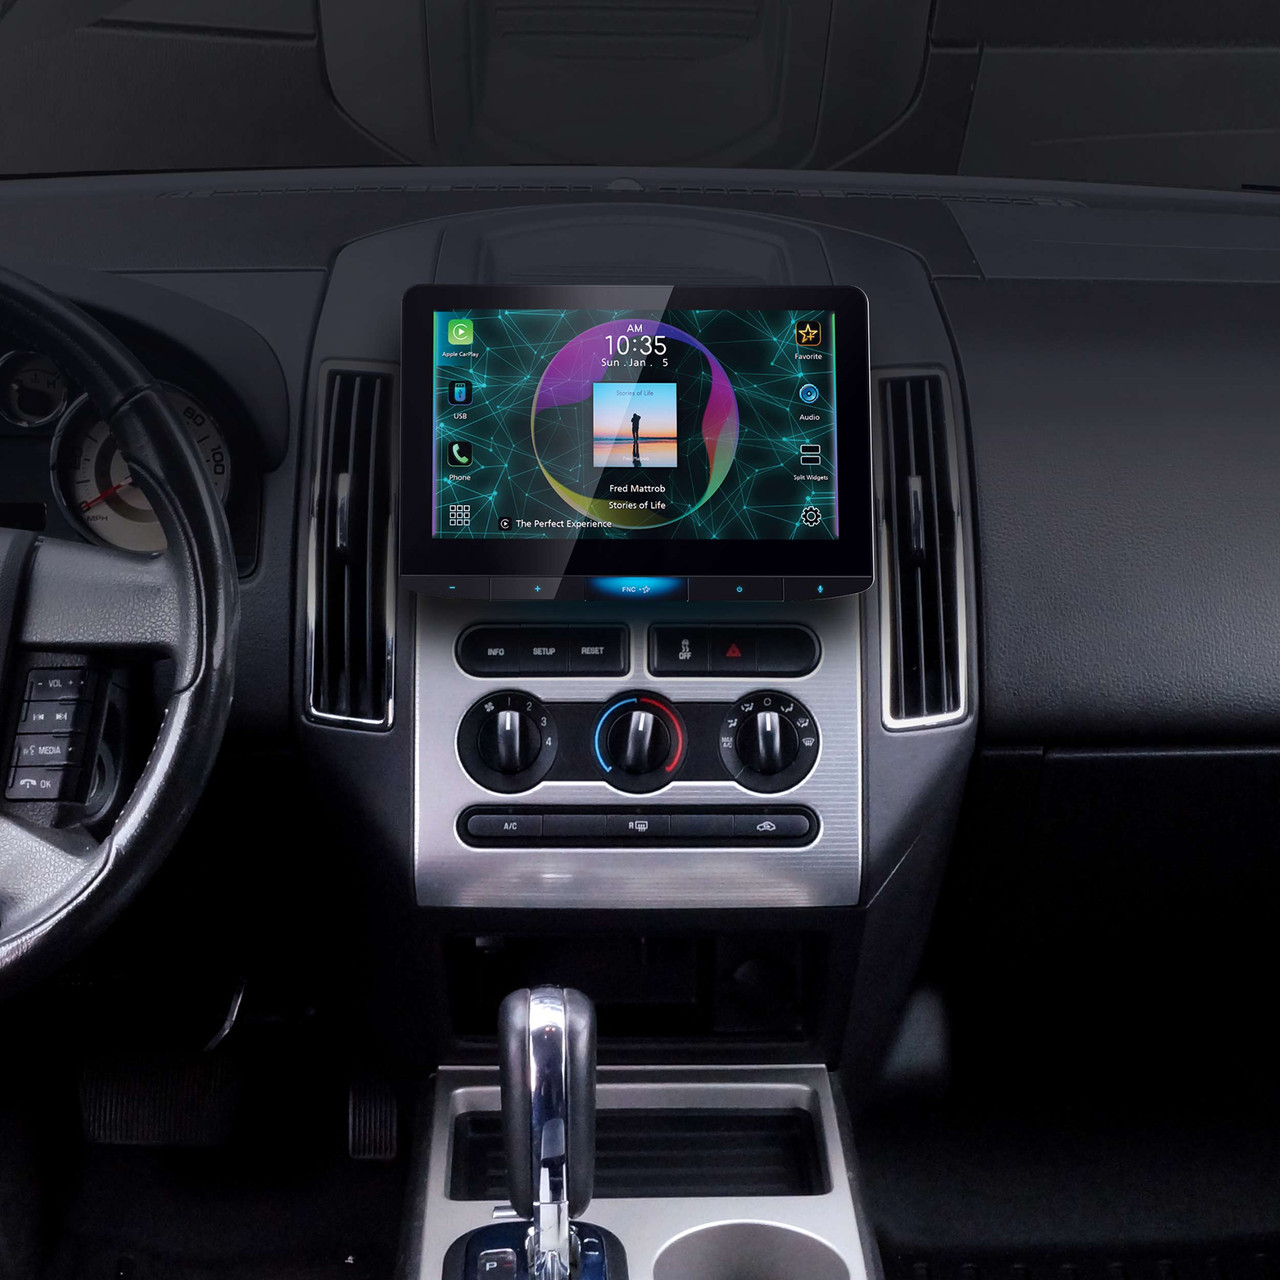 MP3 Player Double DIN Waze-Ready with Apple CarPlay or Android ...